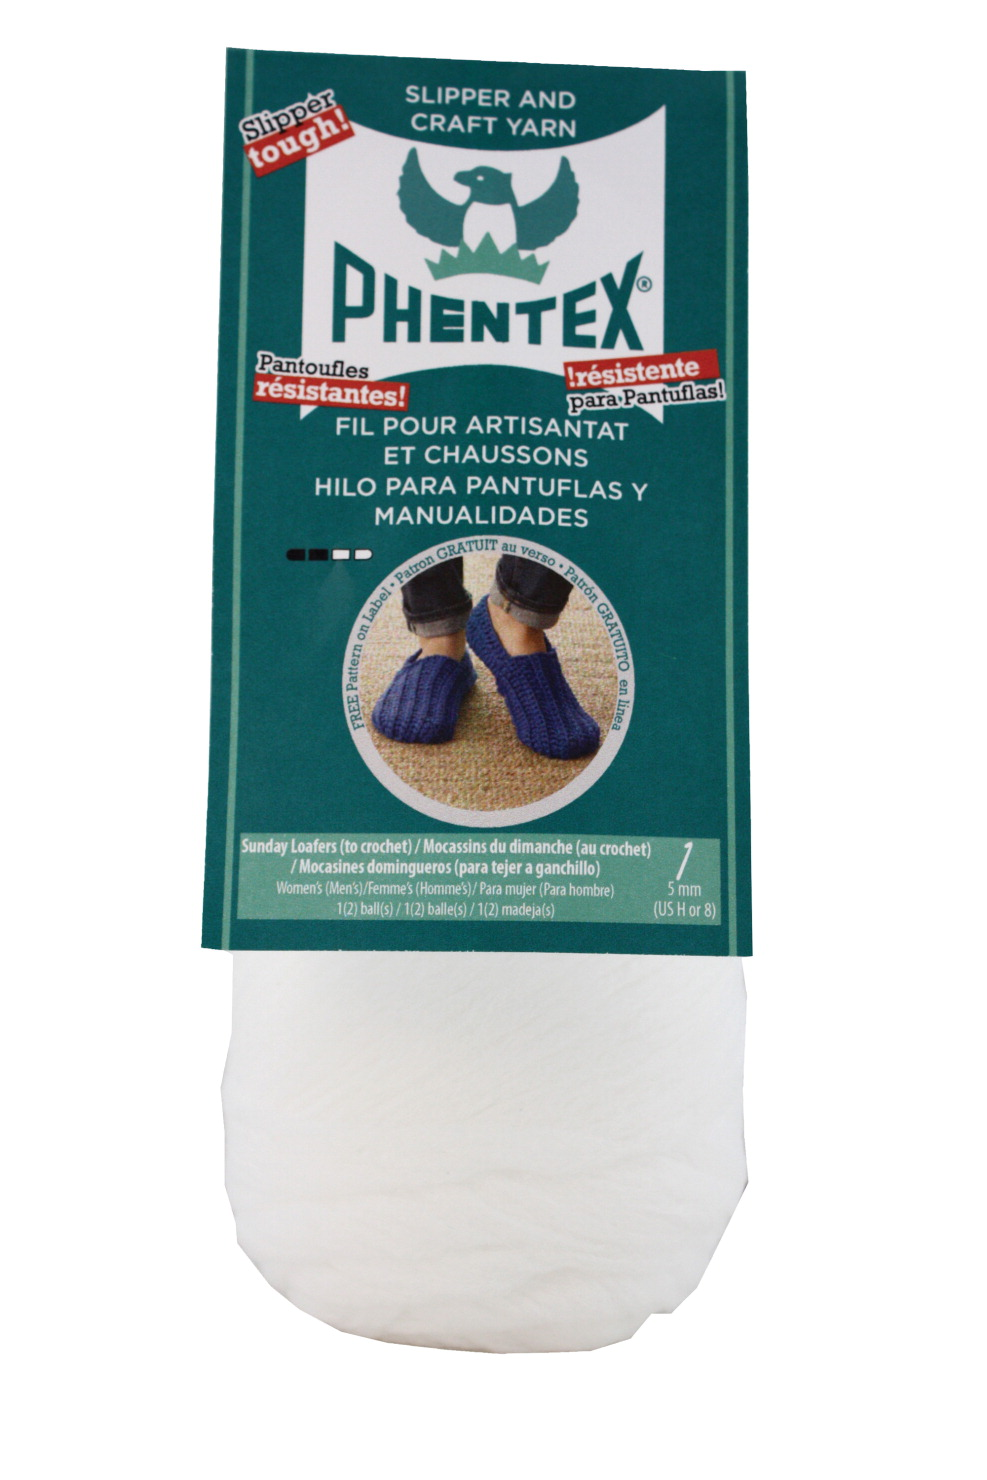 Phentex Olefin Dryable Machine Washable Craft Yarn, 167 yd, White, 3 oz